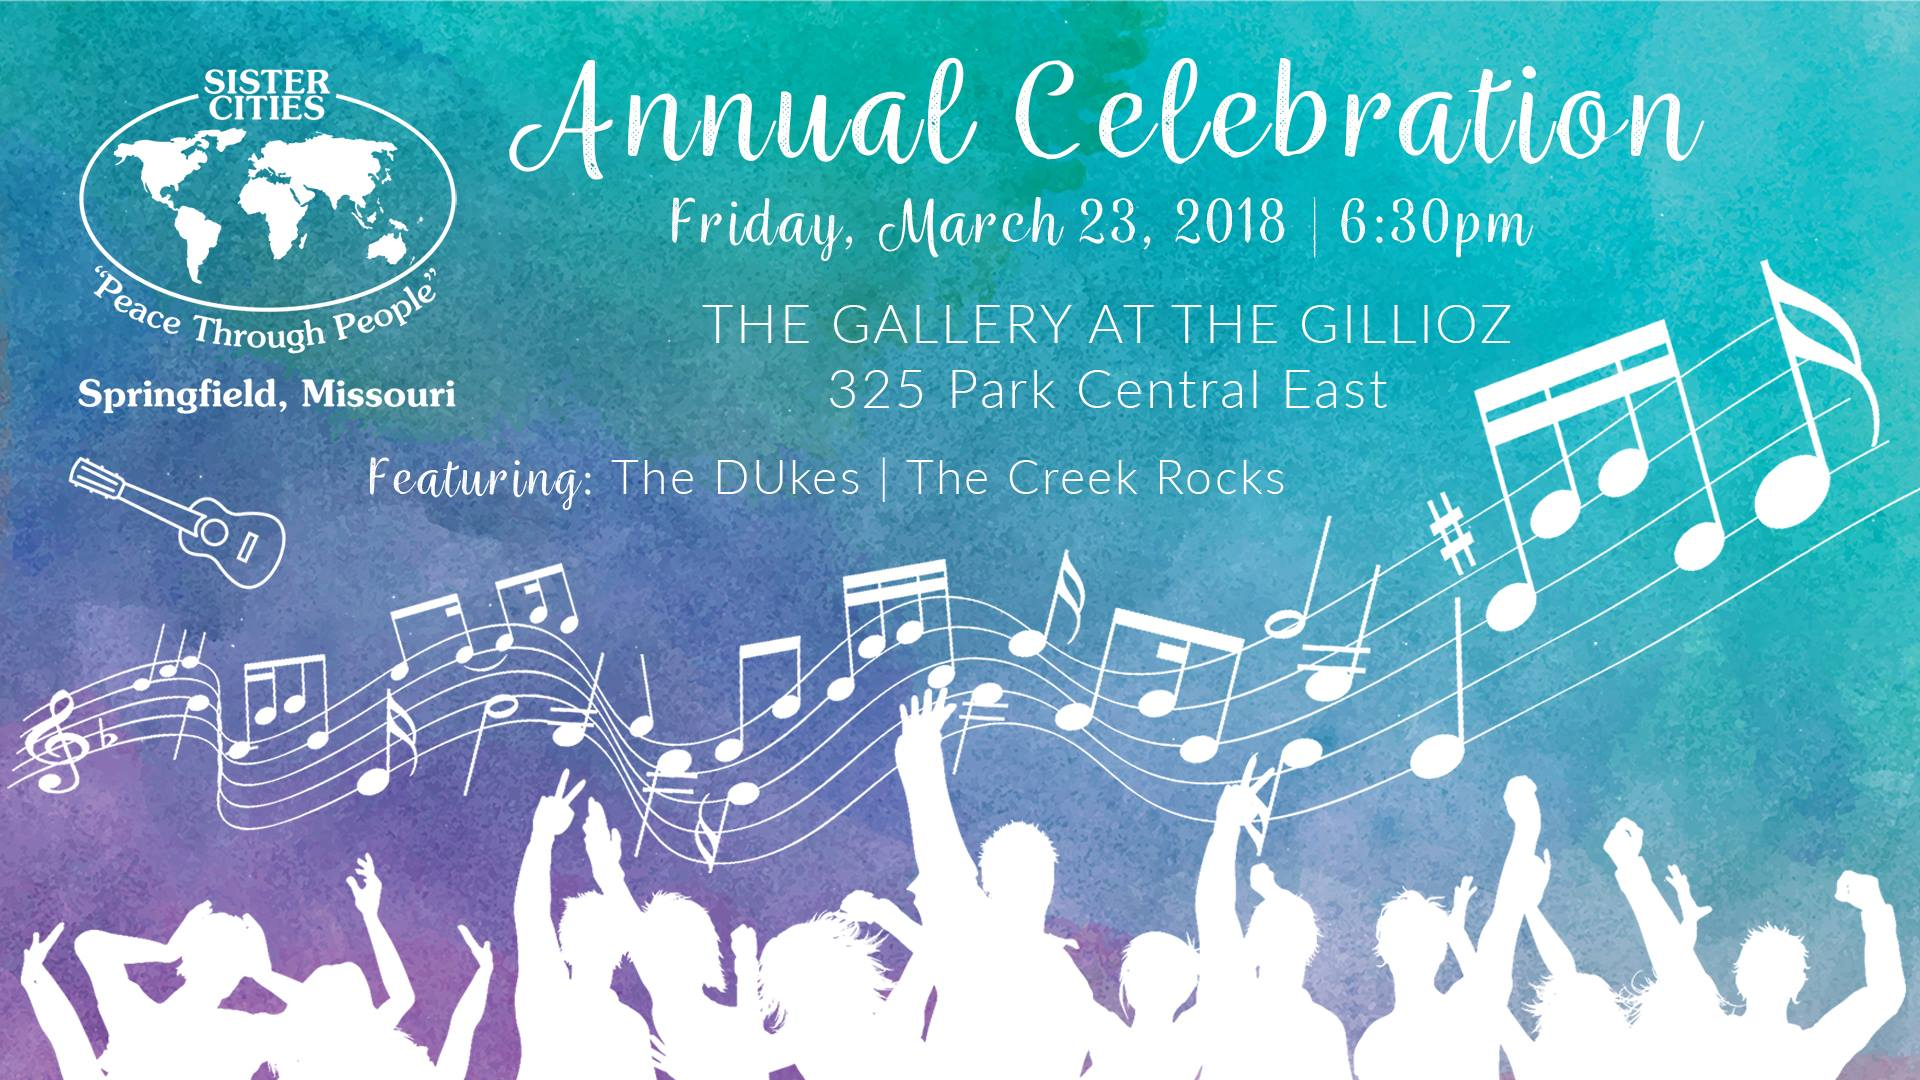 Join us at our 2018 Annual Celebration!